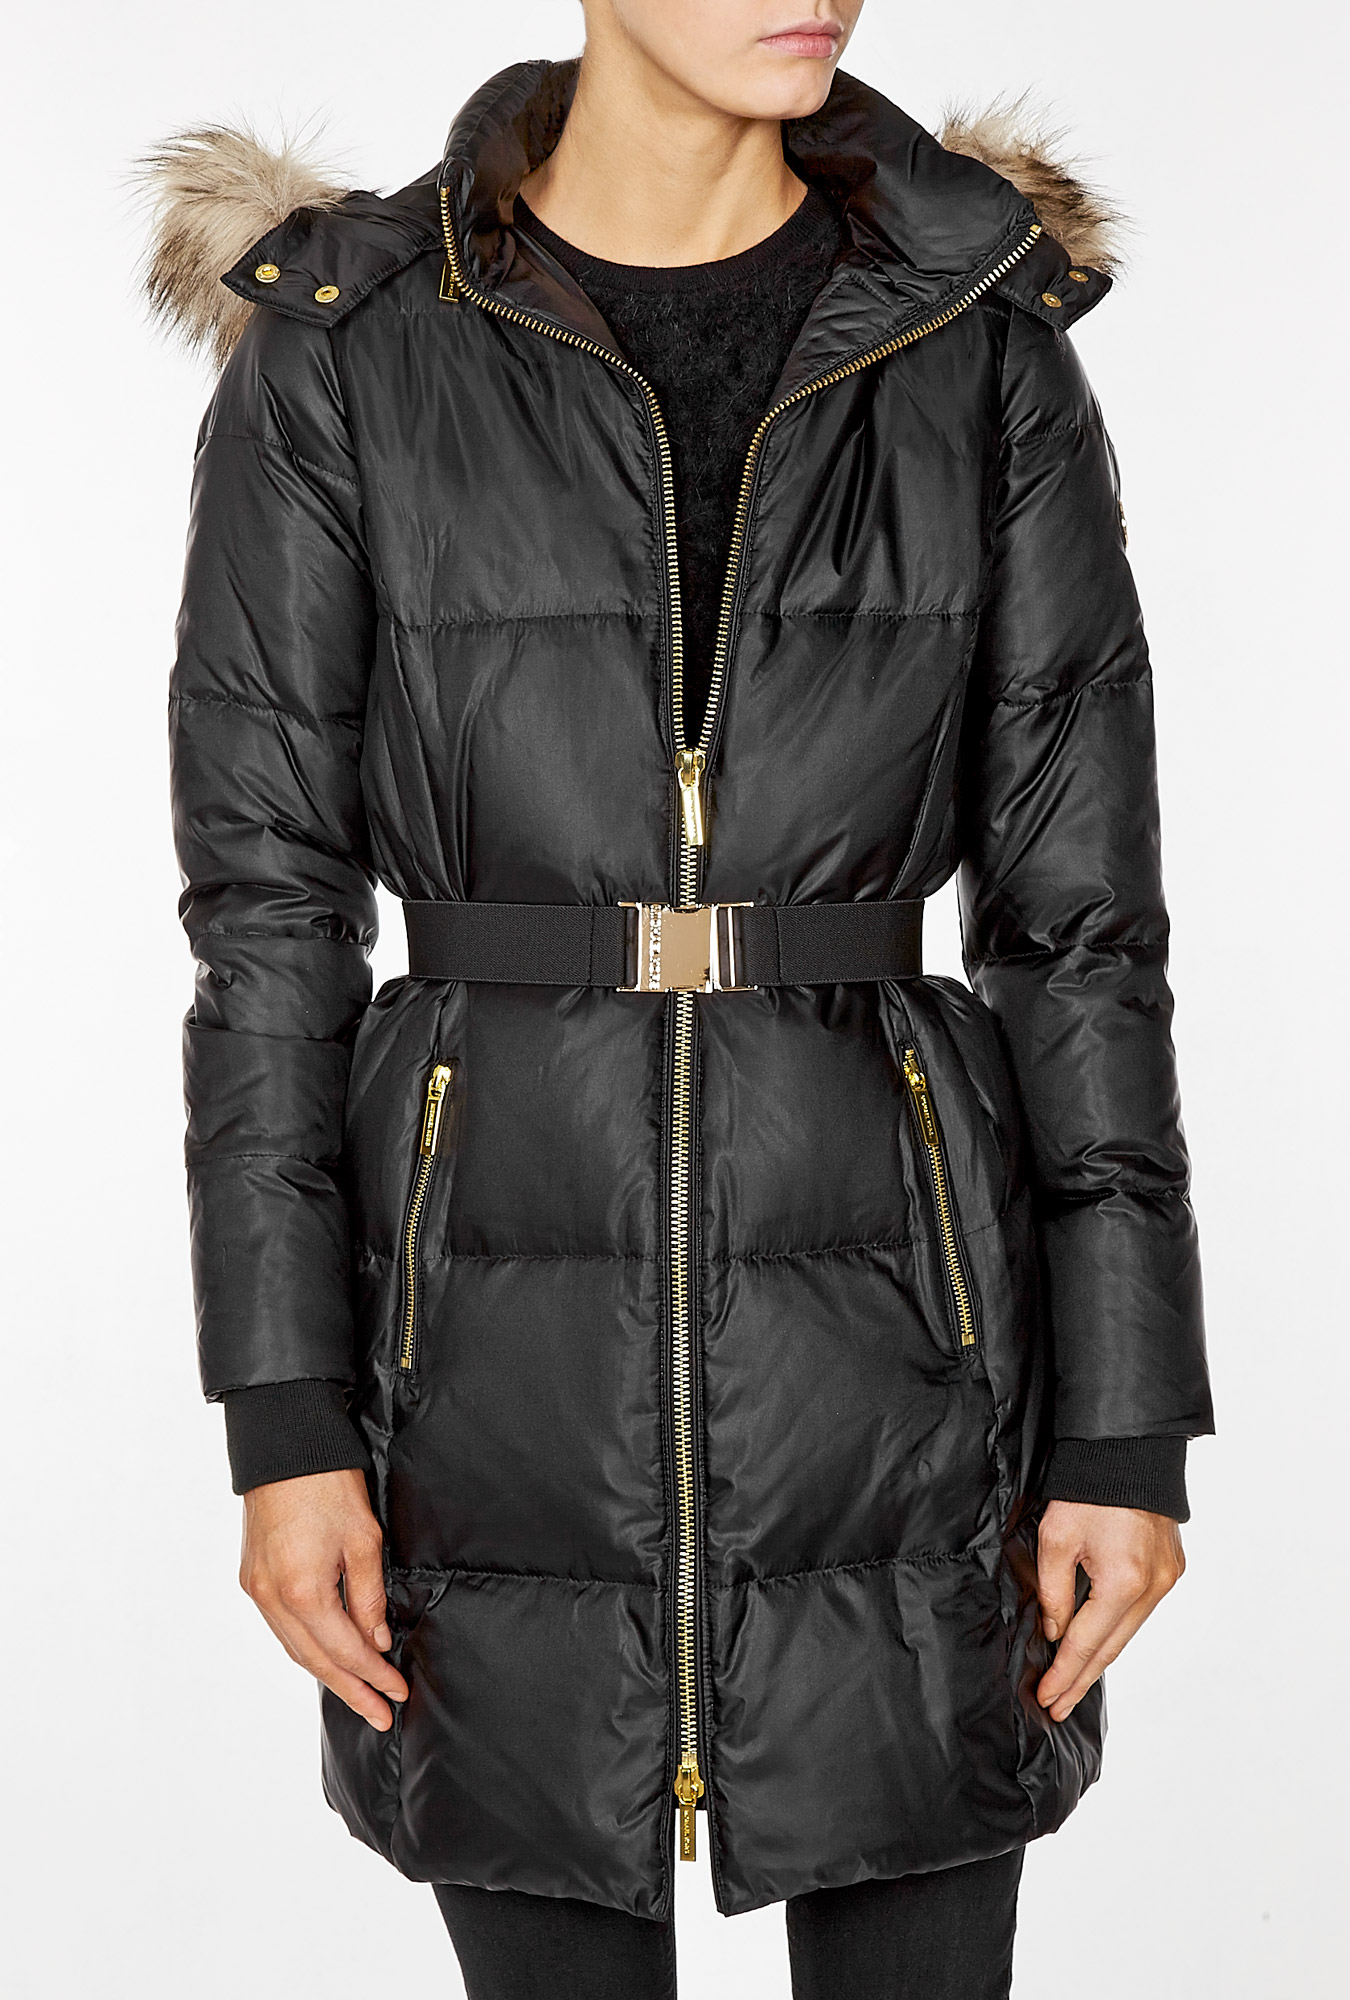 michael michael kors black faux fur trim hooded down jacket lyst. Black Bedroom Furniture Sets. Home Design Ideas